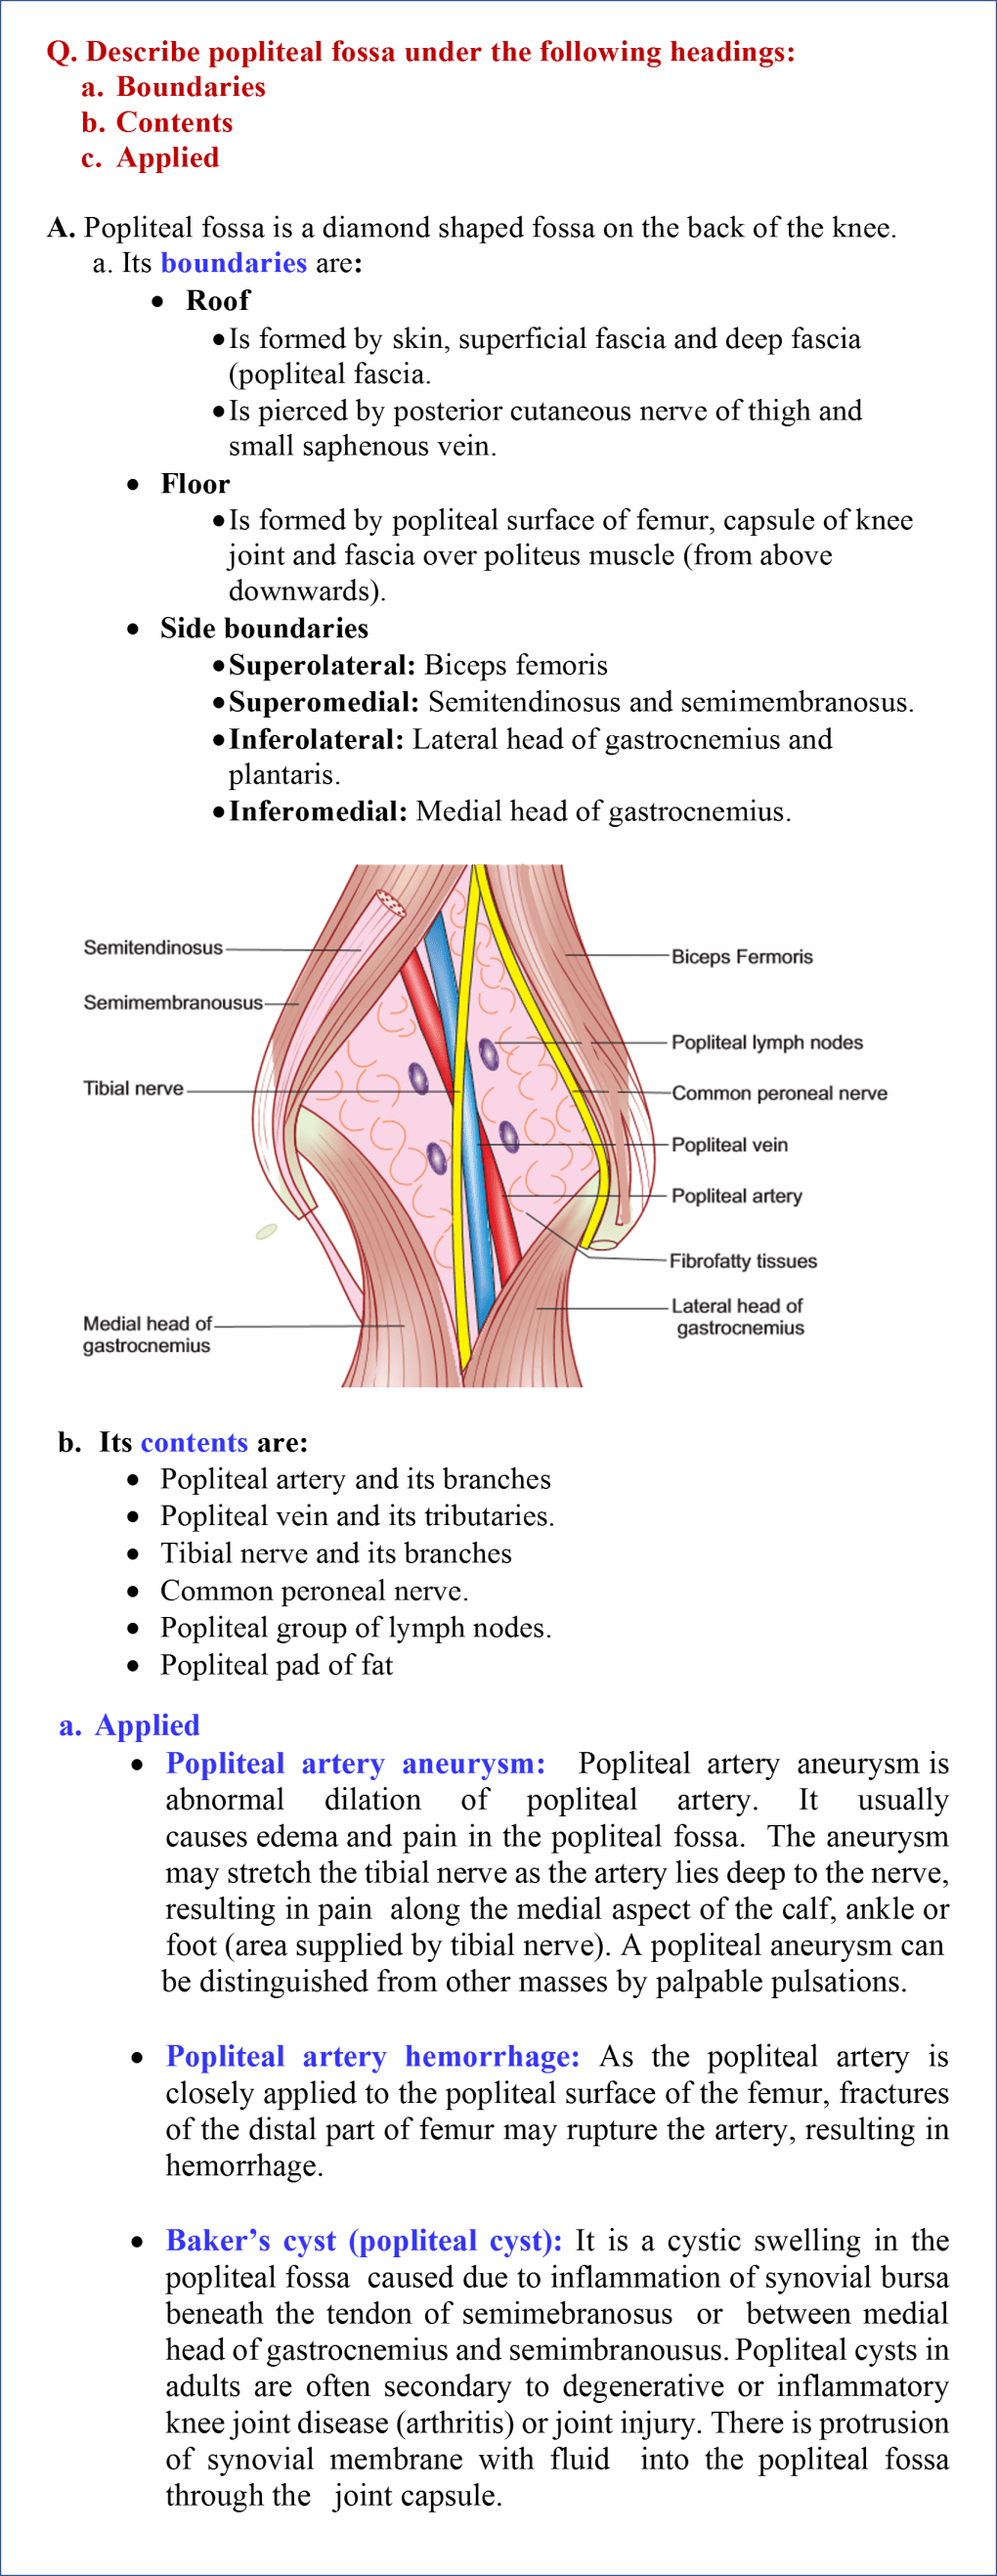 Popliteal fossa- boundaries, contents, and applied anatomy